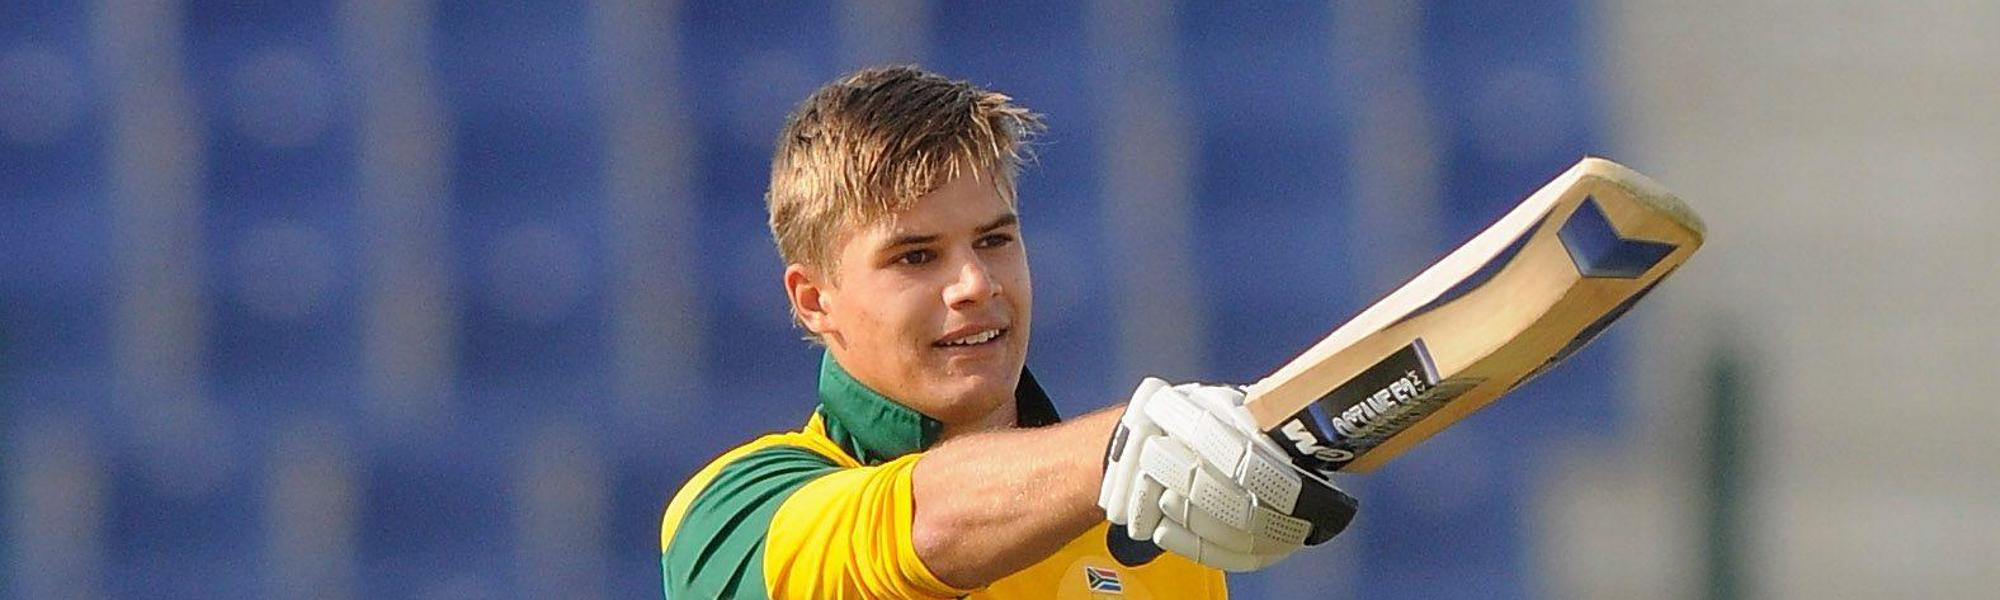 Aiden Markram scored 370 runs at the 2014 ICC U19 World Cup